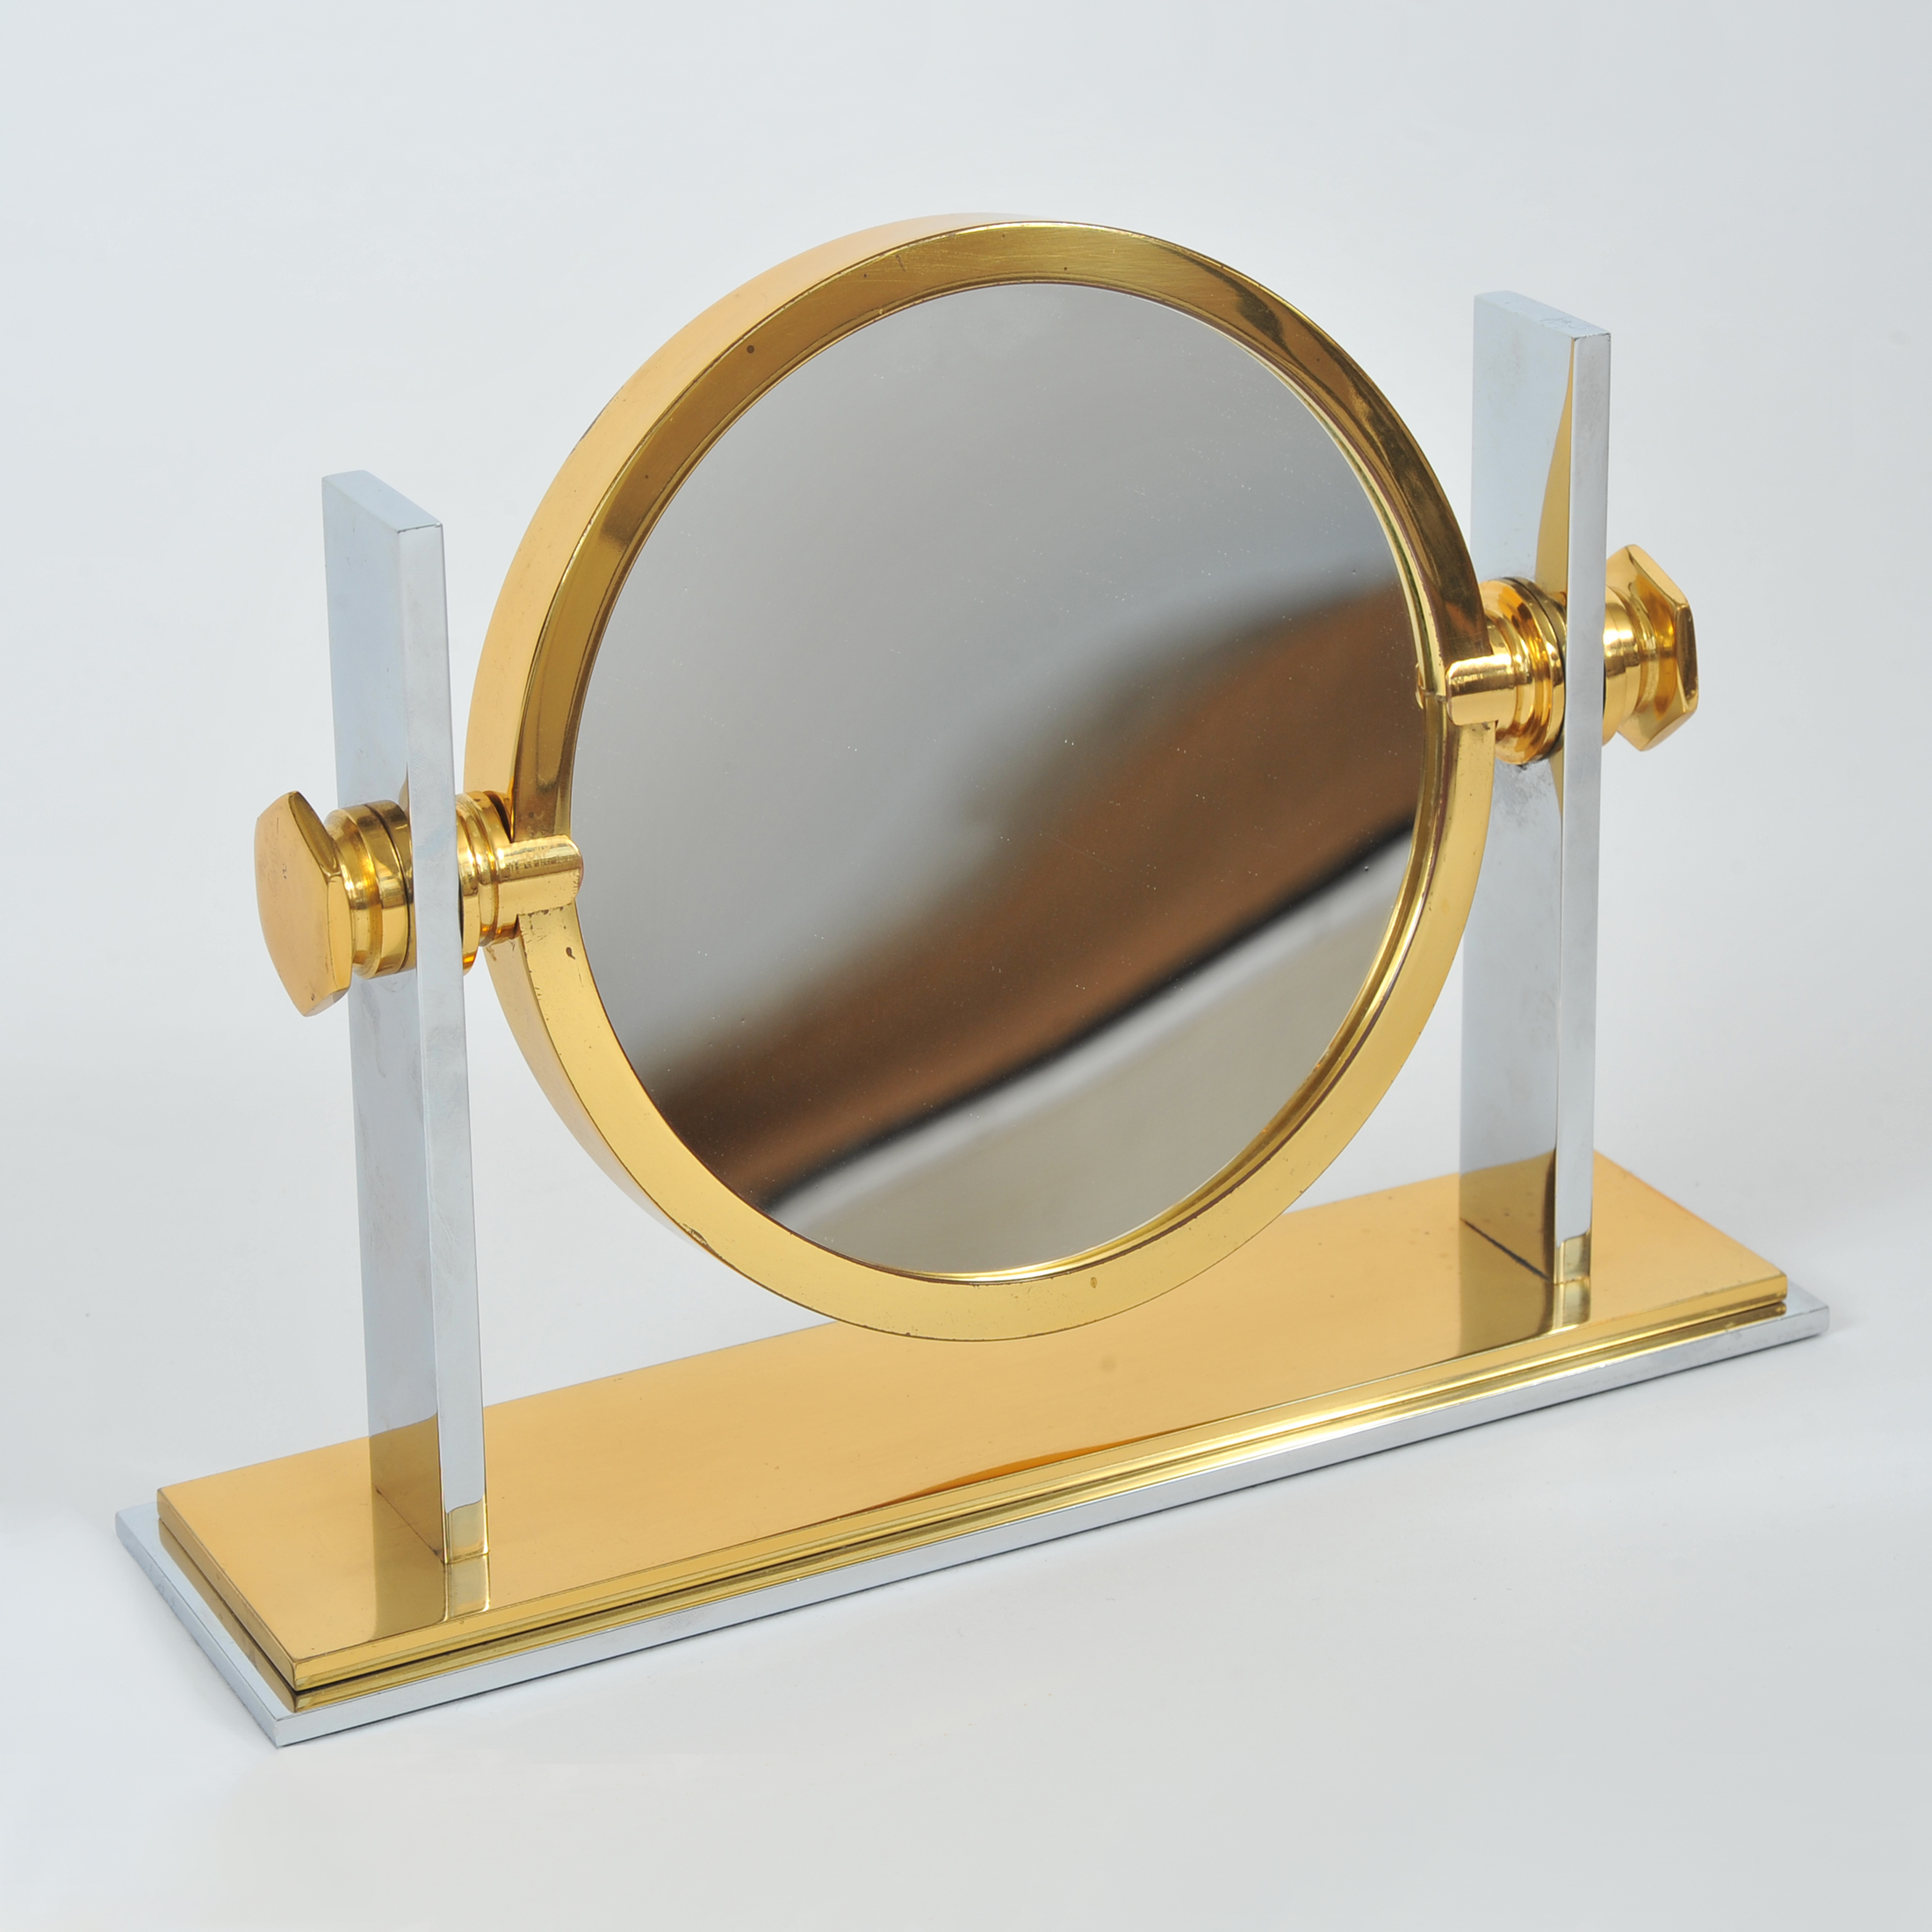 Valerie Wade Mt424 1980S Table Mirror Karl Springer 01